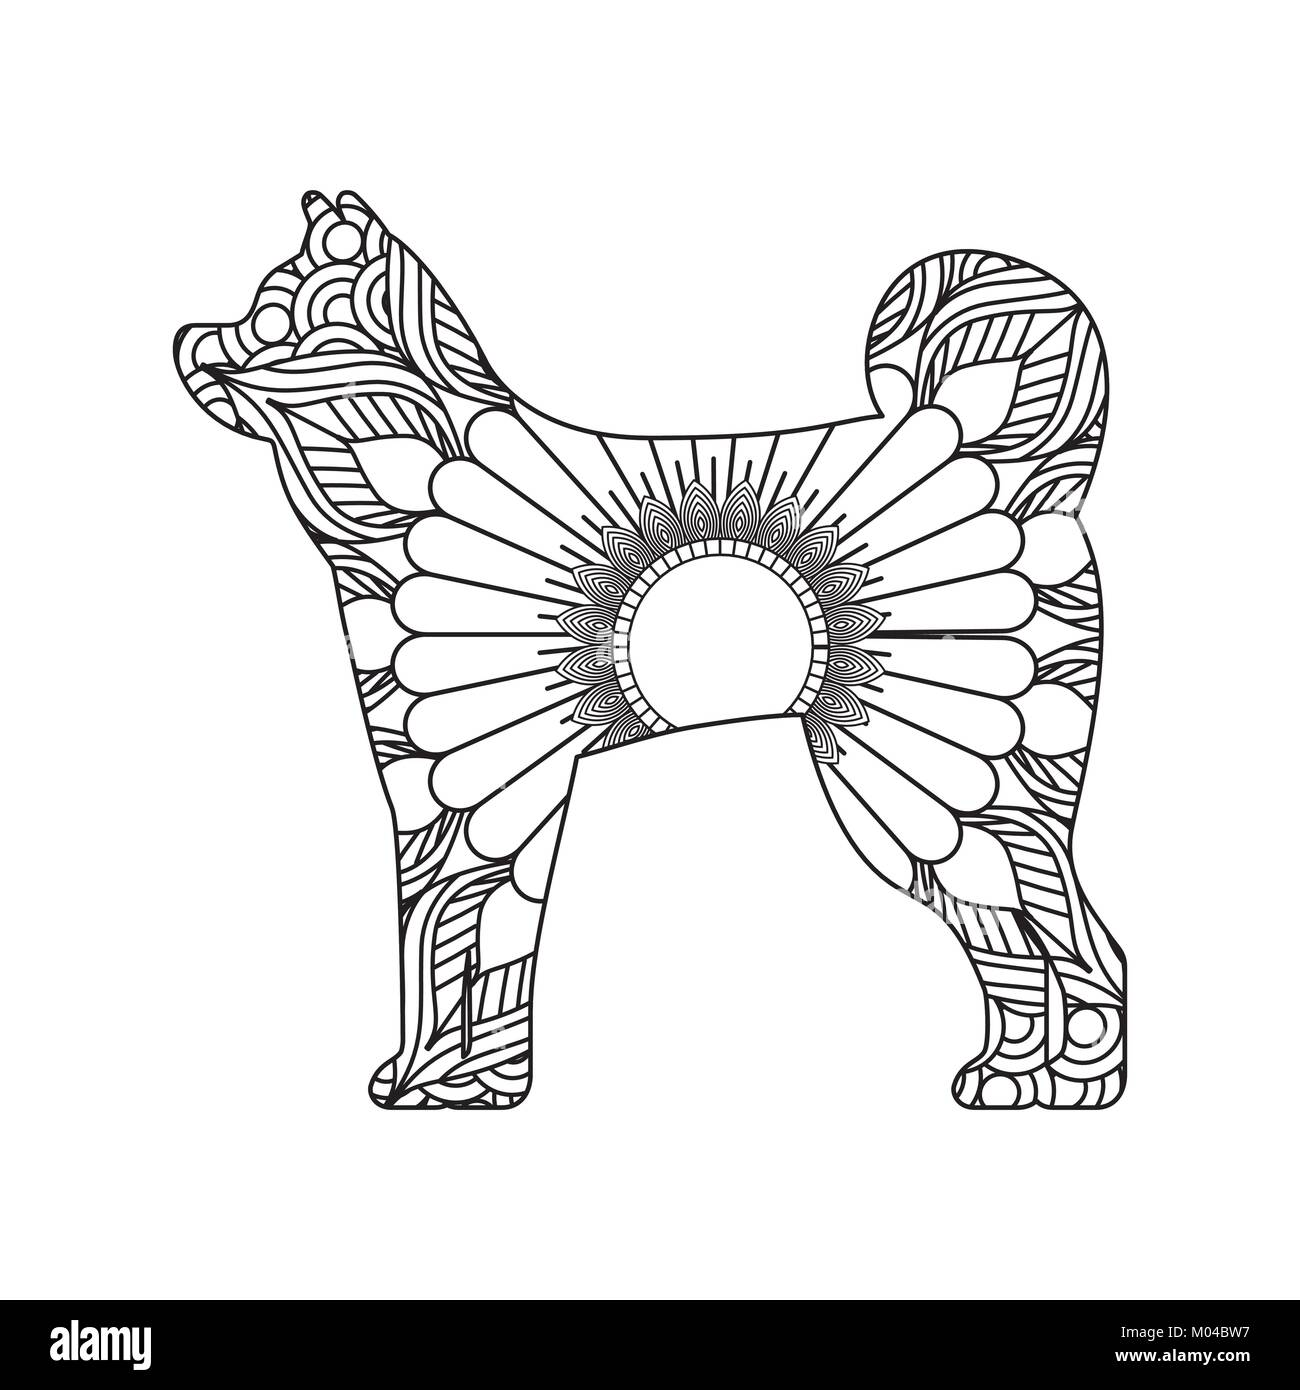 drawing zentangle for dog adult coloring page Stock Vector Art ...